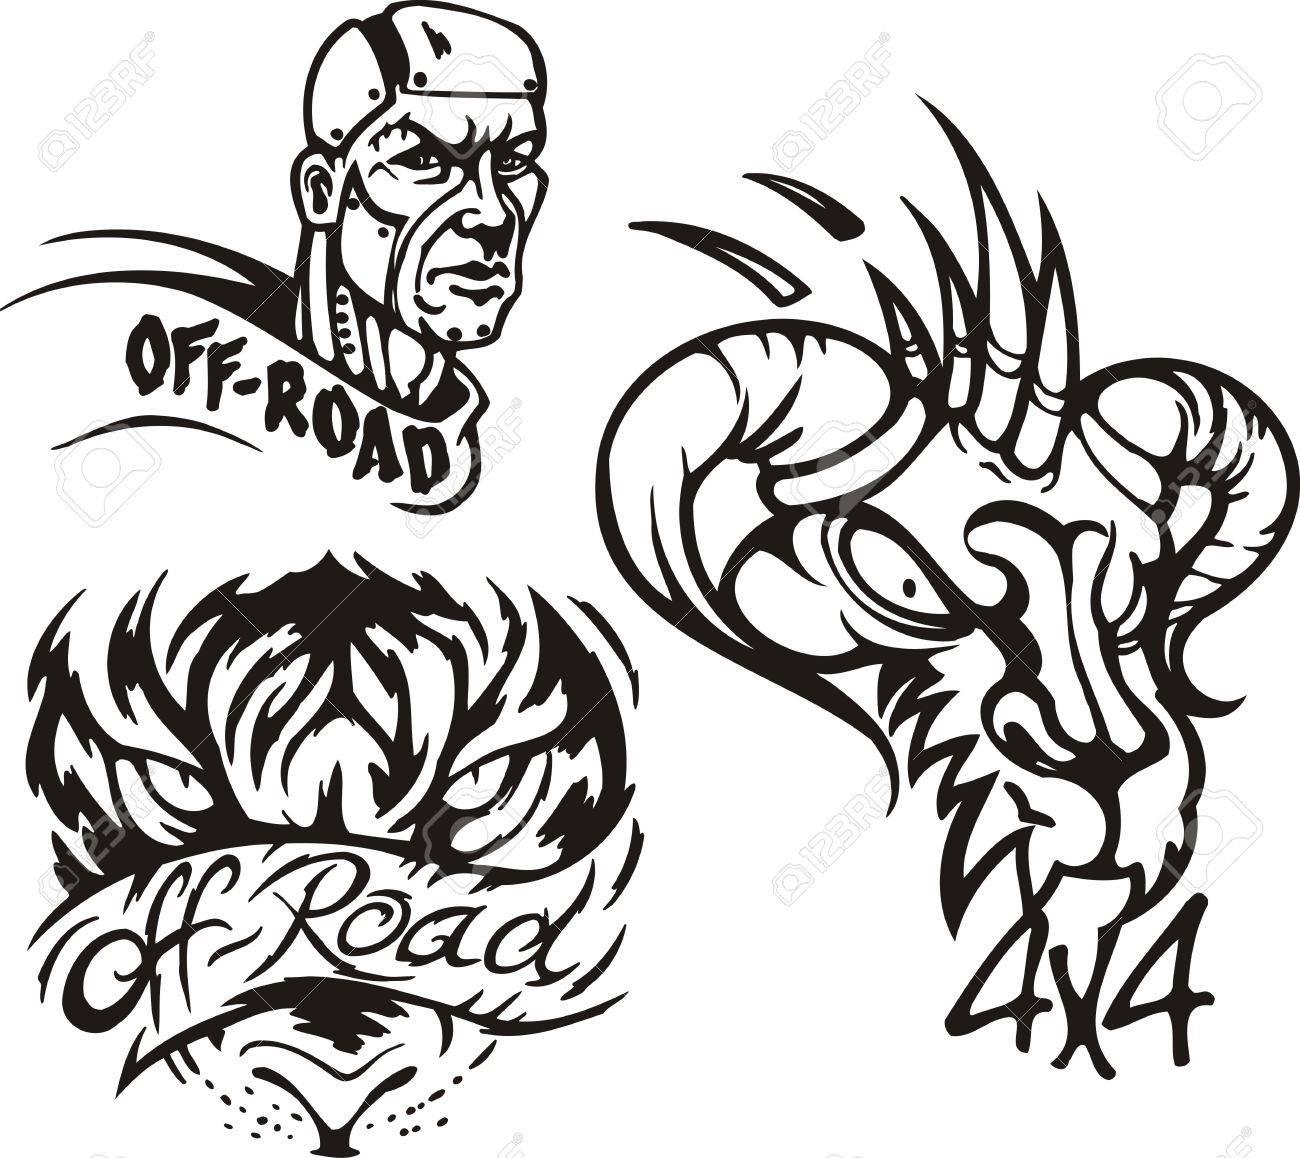 Eagle owl, the horned monster and the zombie. Off-road symbols. Vector illustration ready for vinylcutting. Stock Vector - 8447723